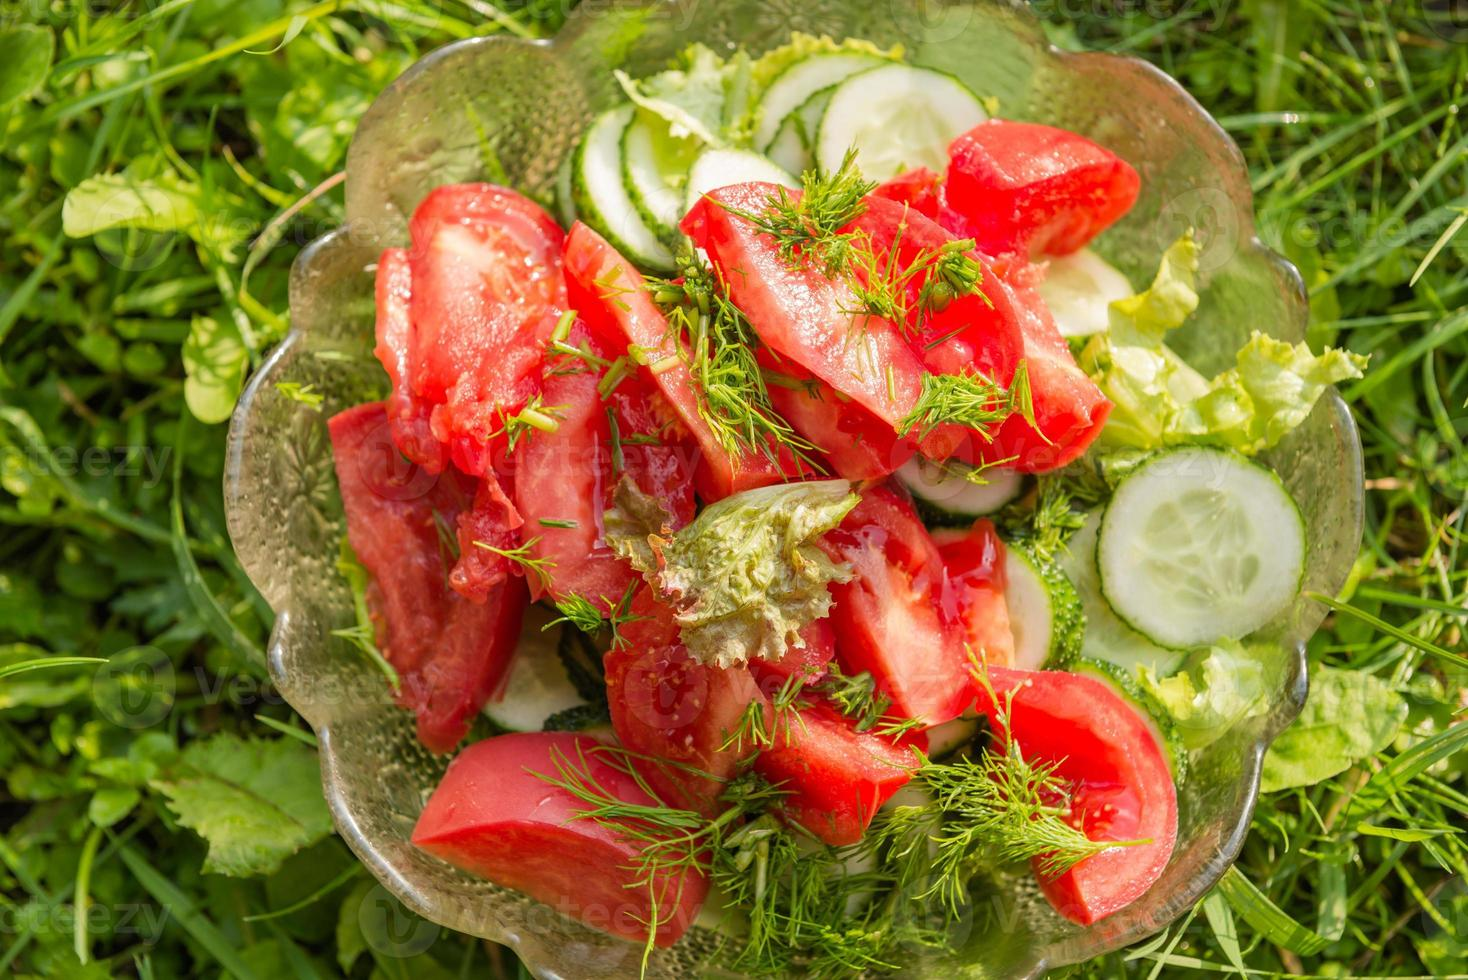 lettuce, tomatoes and cucumbers in a glass bowl photo